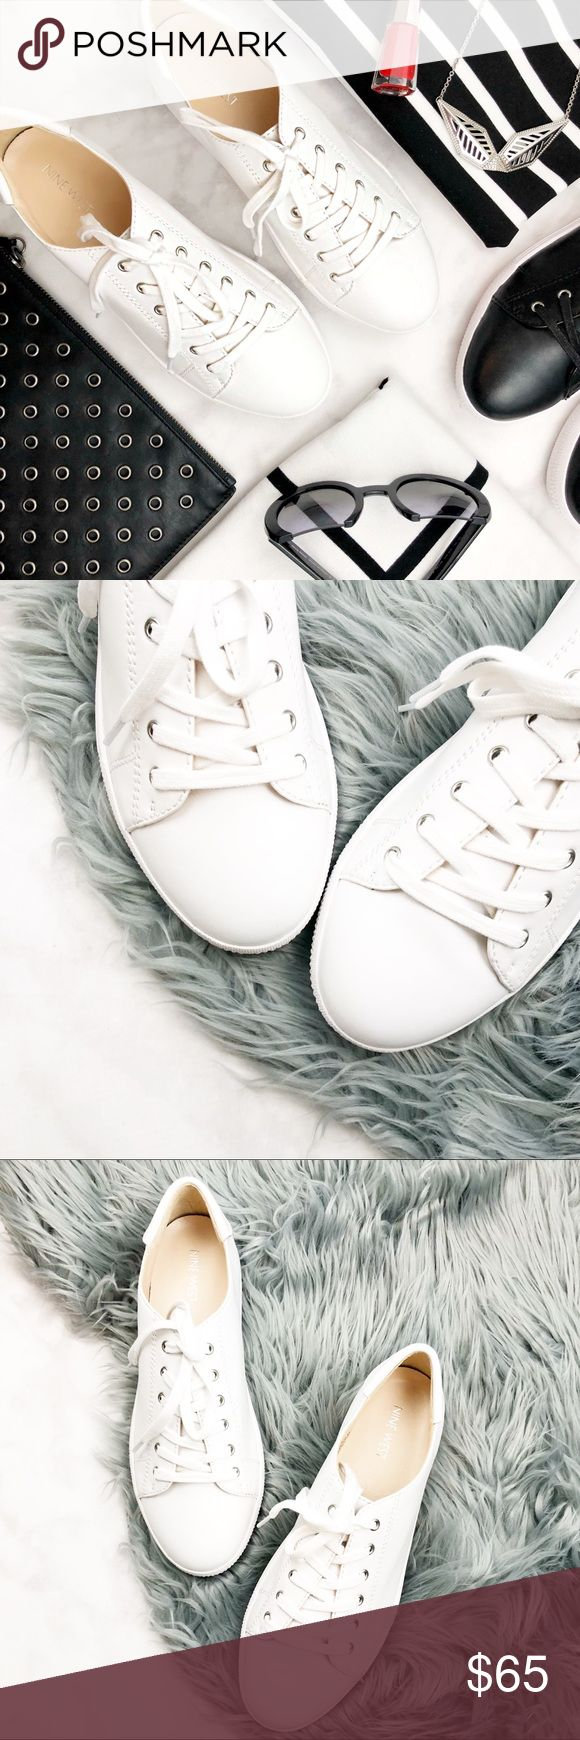 White Leather Minimalist Sneakers Details: * Size 8.5 * True to size  * Leather  * New in box Nine West Shoes Sneakers